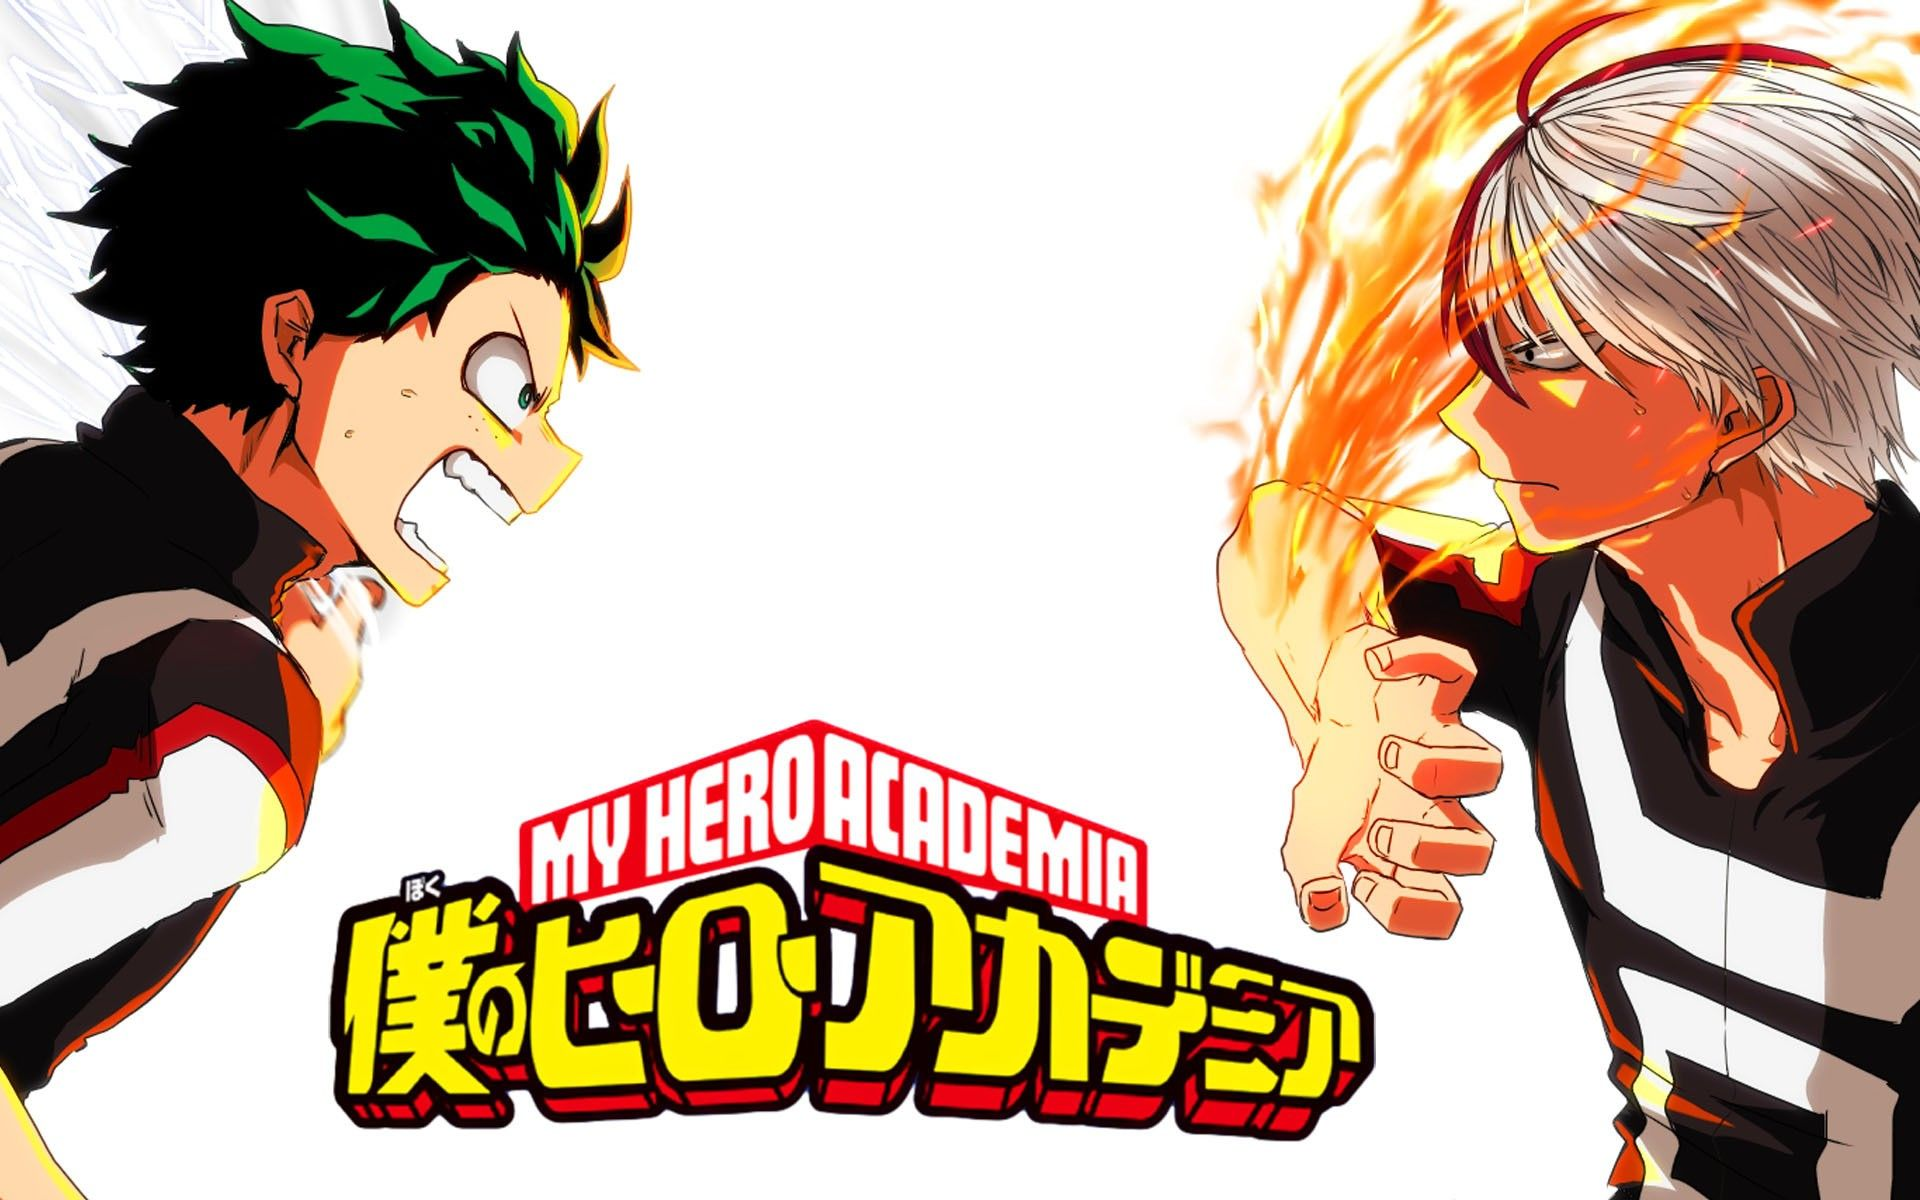 Carefully selected 43 best my hero academia wallpapers, you can download in one click. My Hero Academia 4K Wallpapers - Top Free My Hero Academia ...